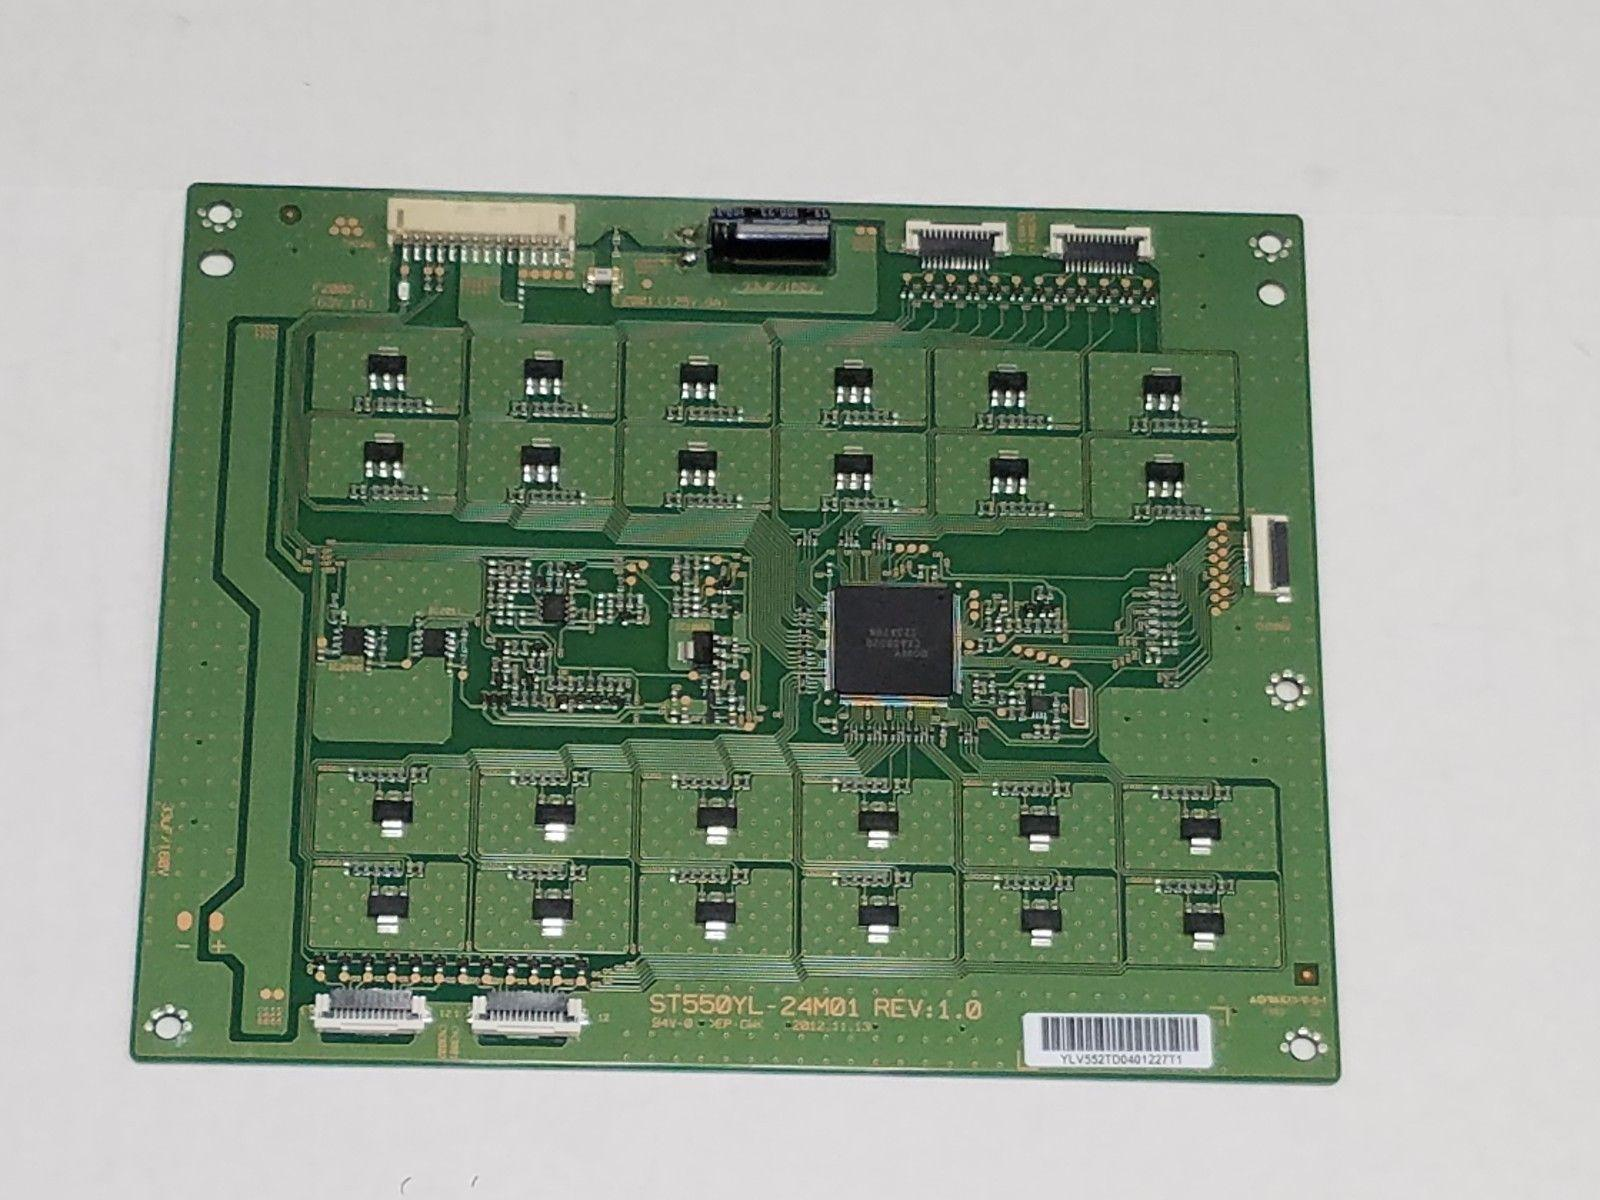 Sony XBR 55X900A LED Driver ST550YL 24M01